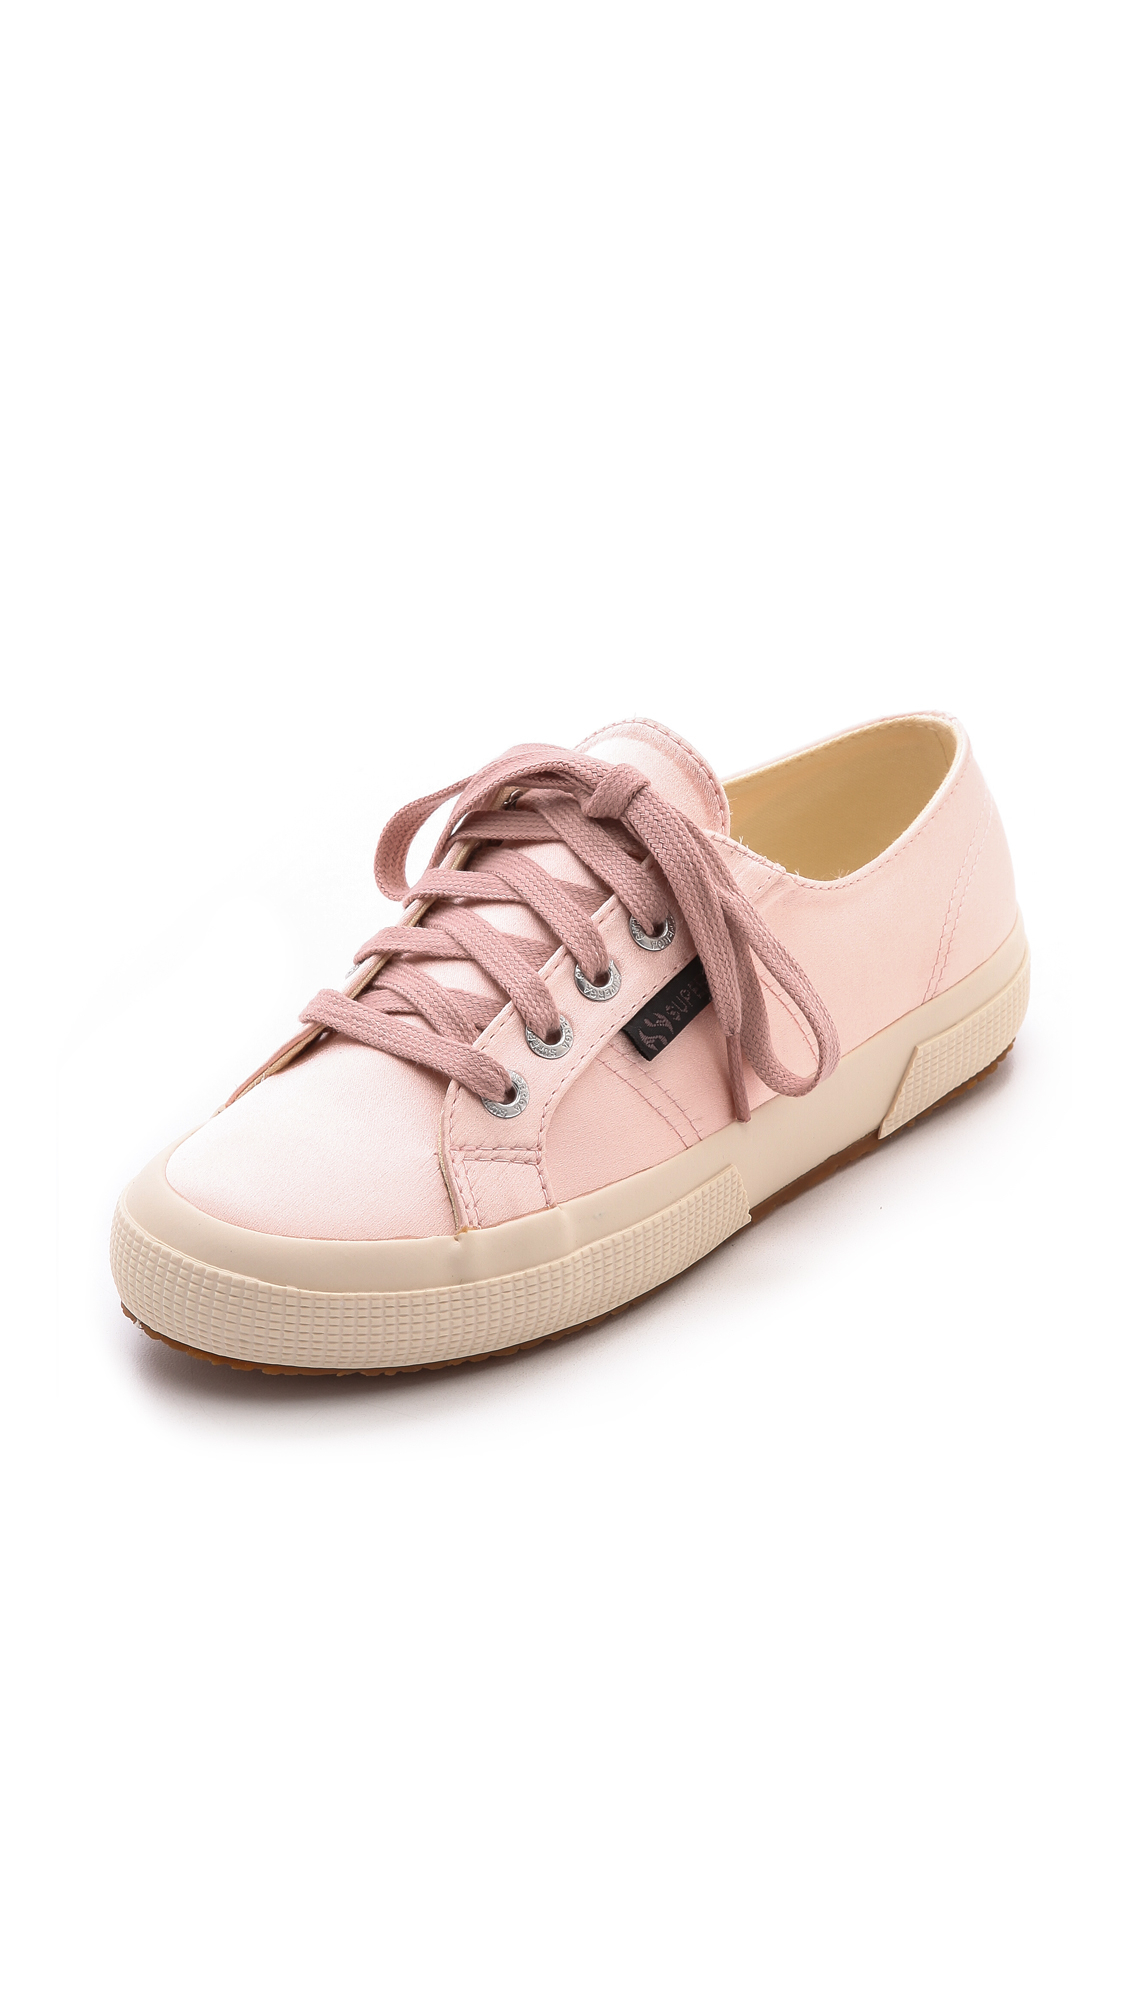 95f4b7171a8c98 Superga The Man Repeller X Satin Classic Olive Green in Pink - Lyst